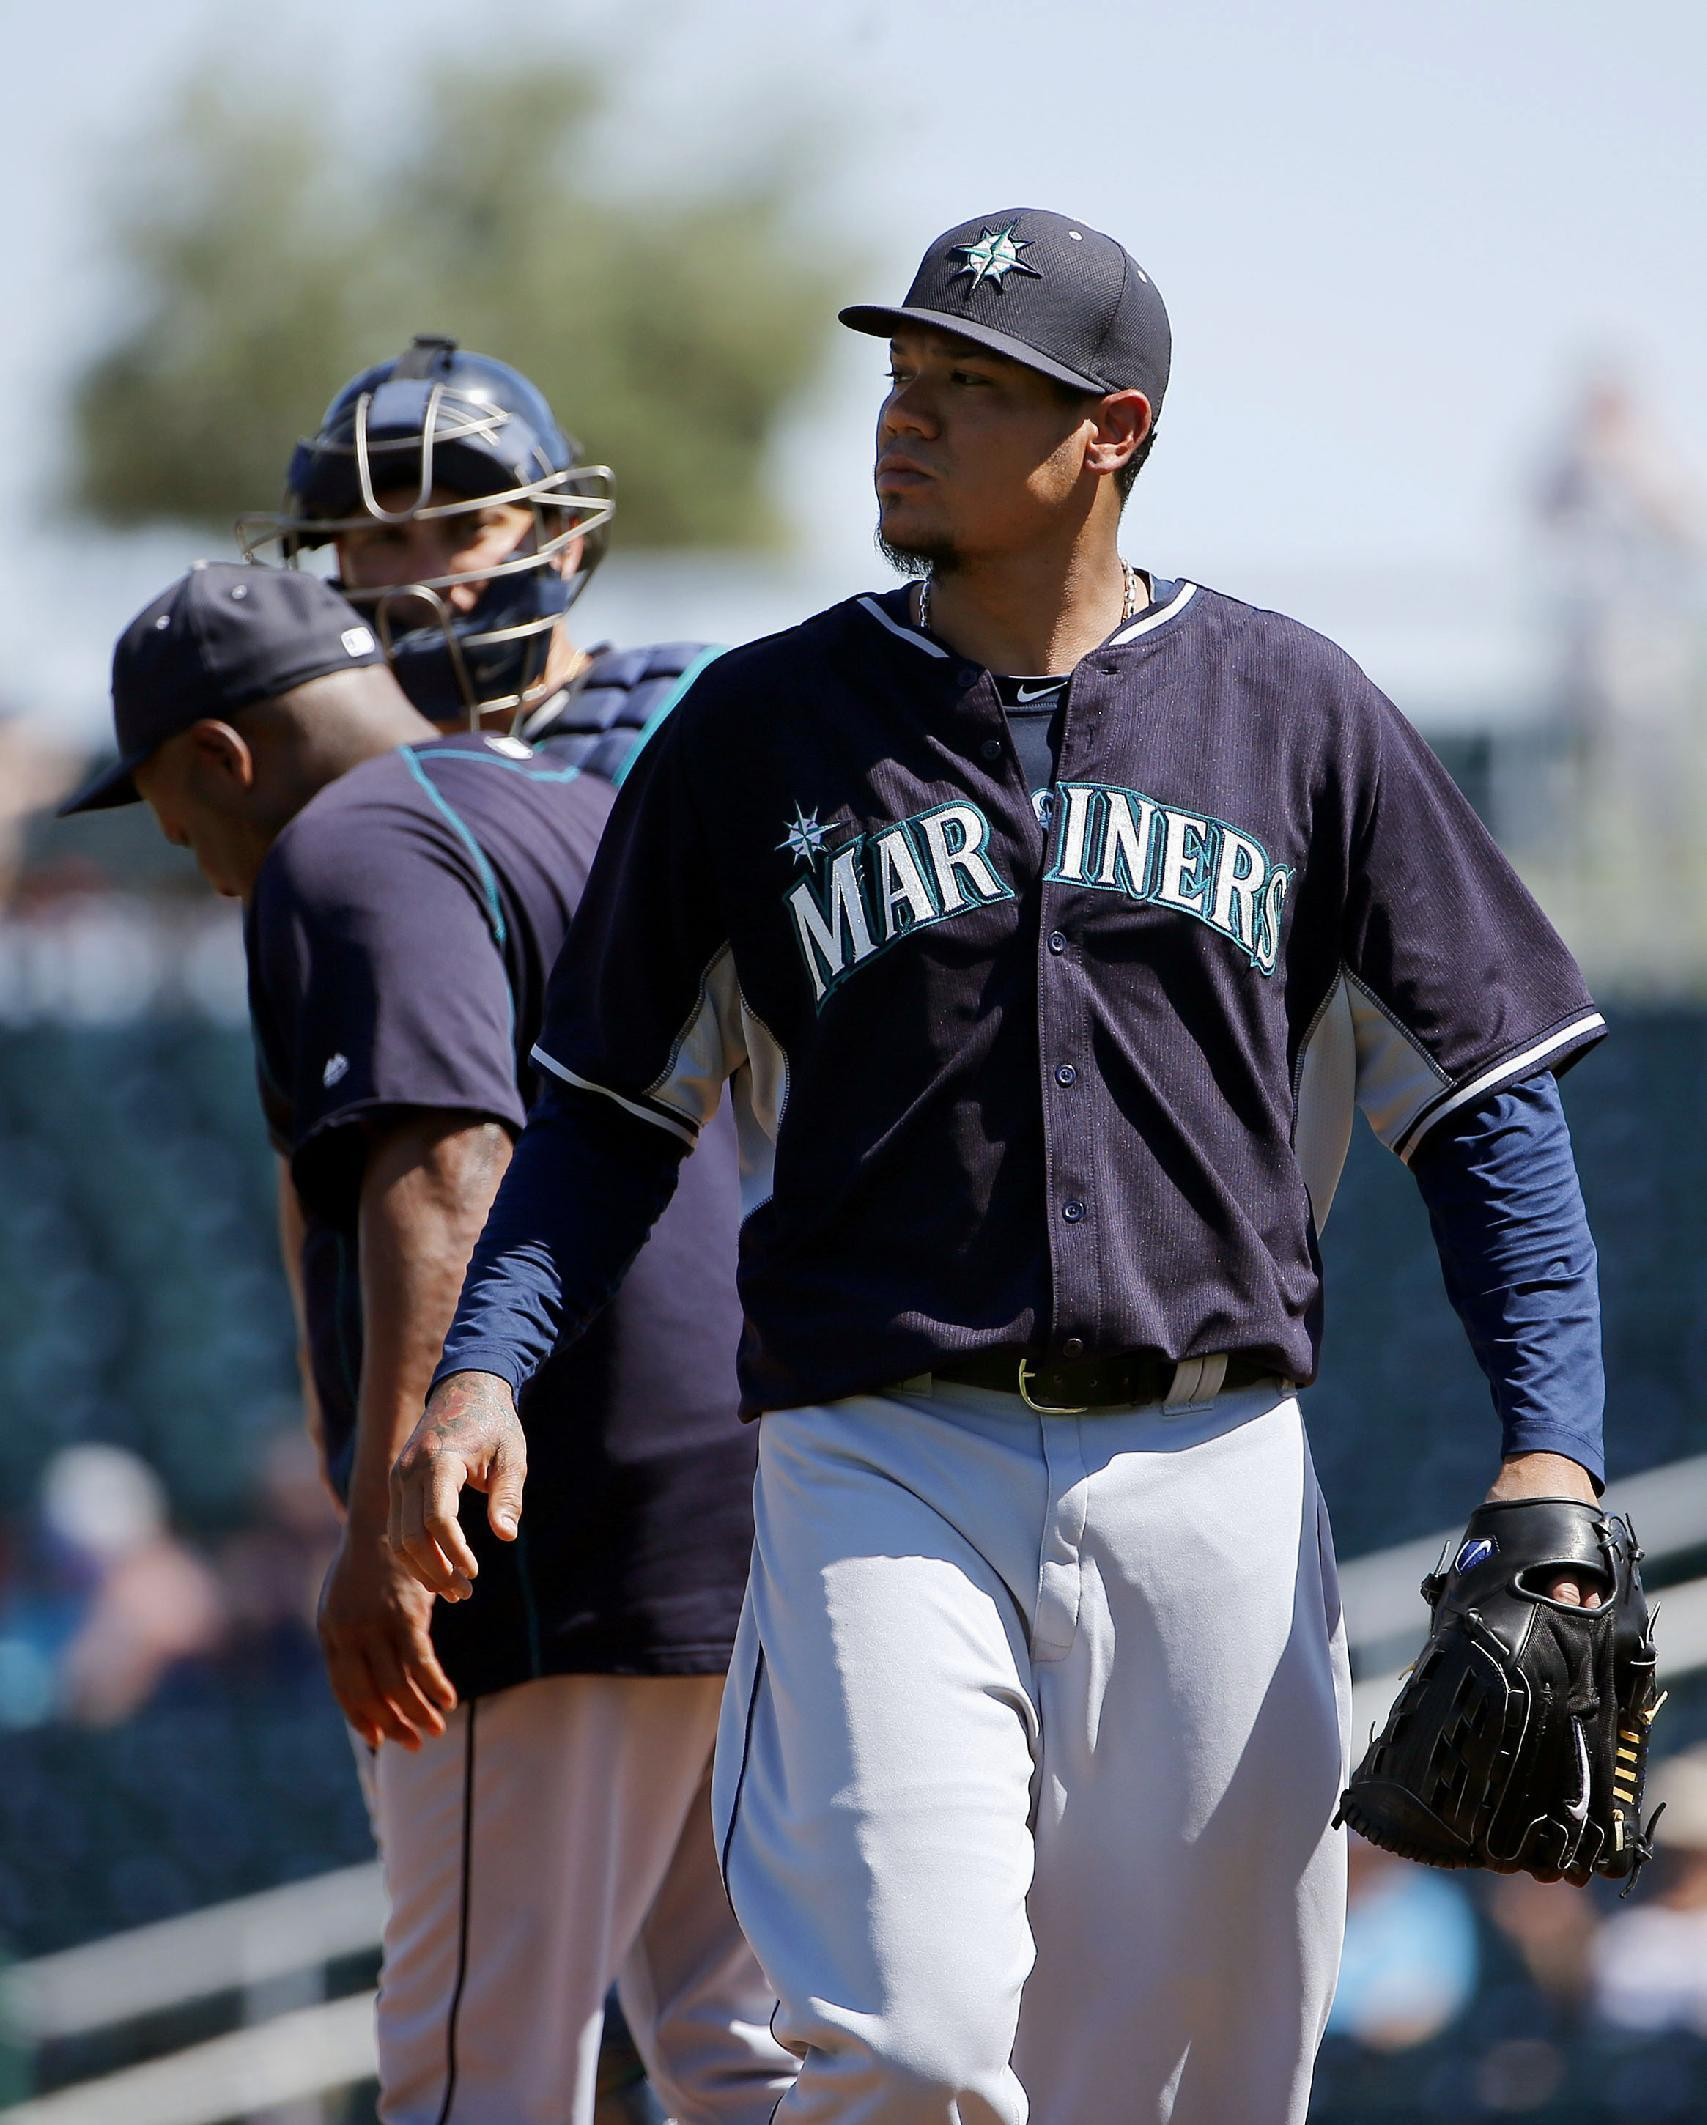 McClendon ejected during Mariners' 8-6 loss to Indians